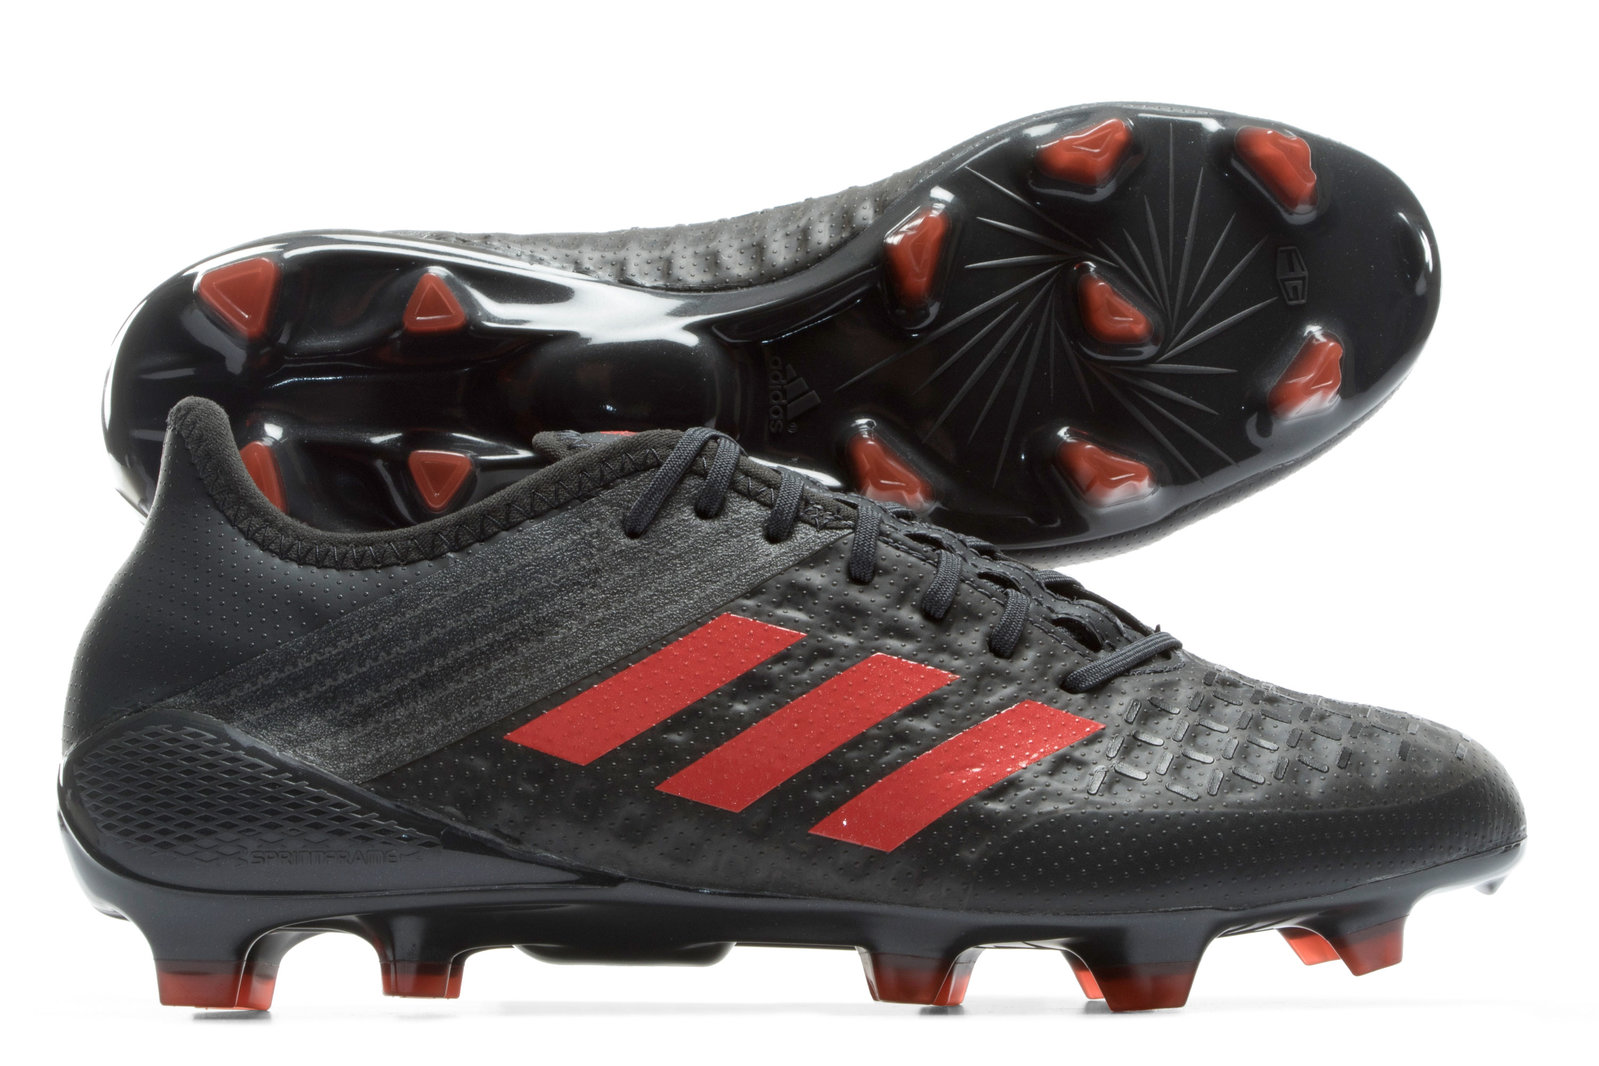 brand new 1176a dff98 adidas Mens Predator Malice Control FG Rugby Boots Sports Shoes Studs Brown